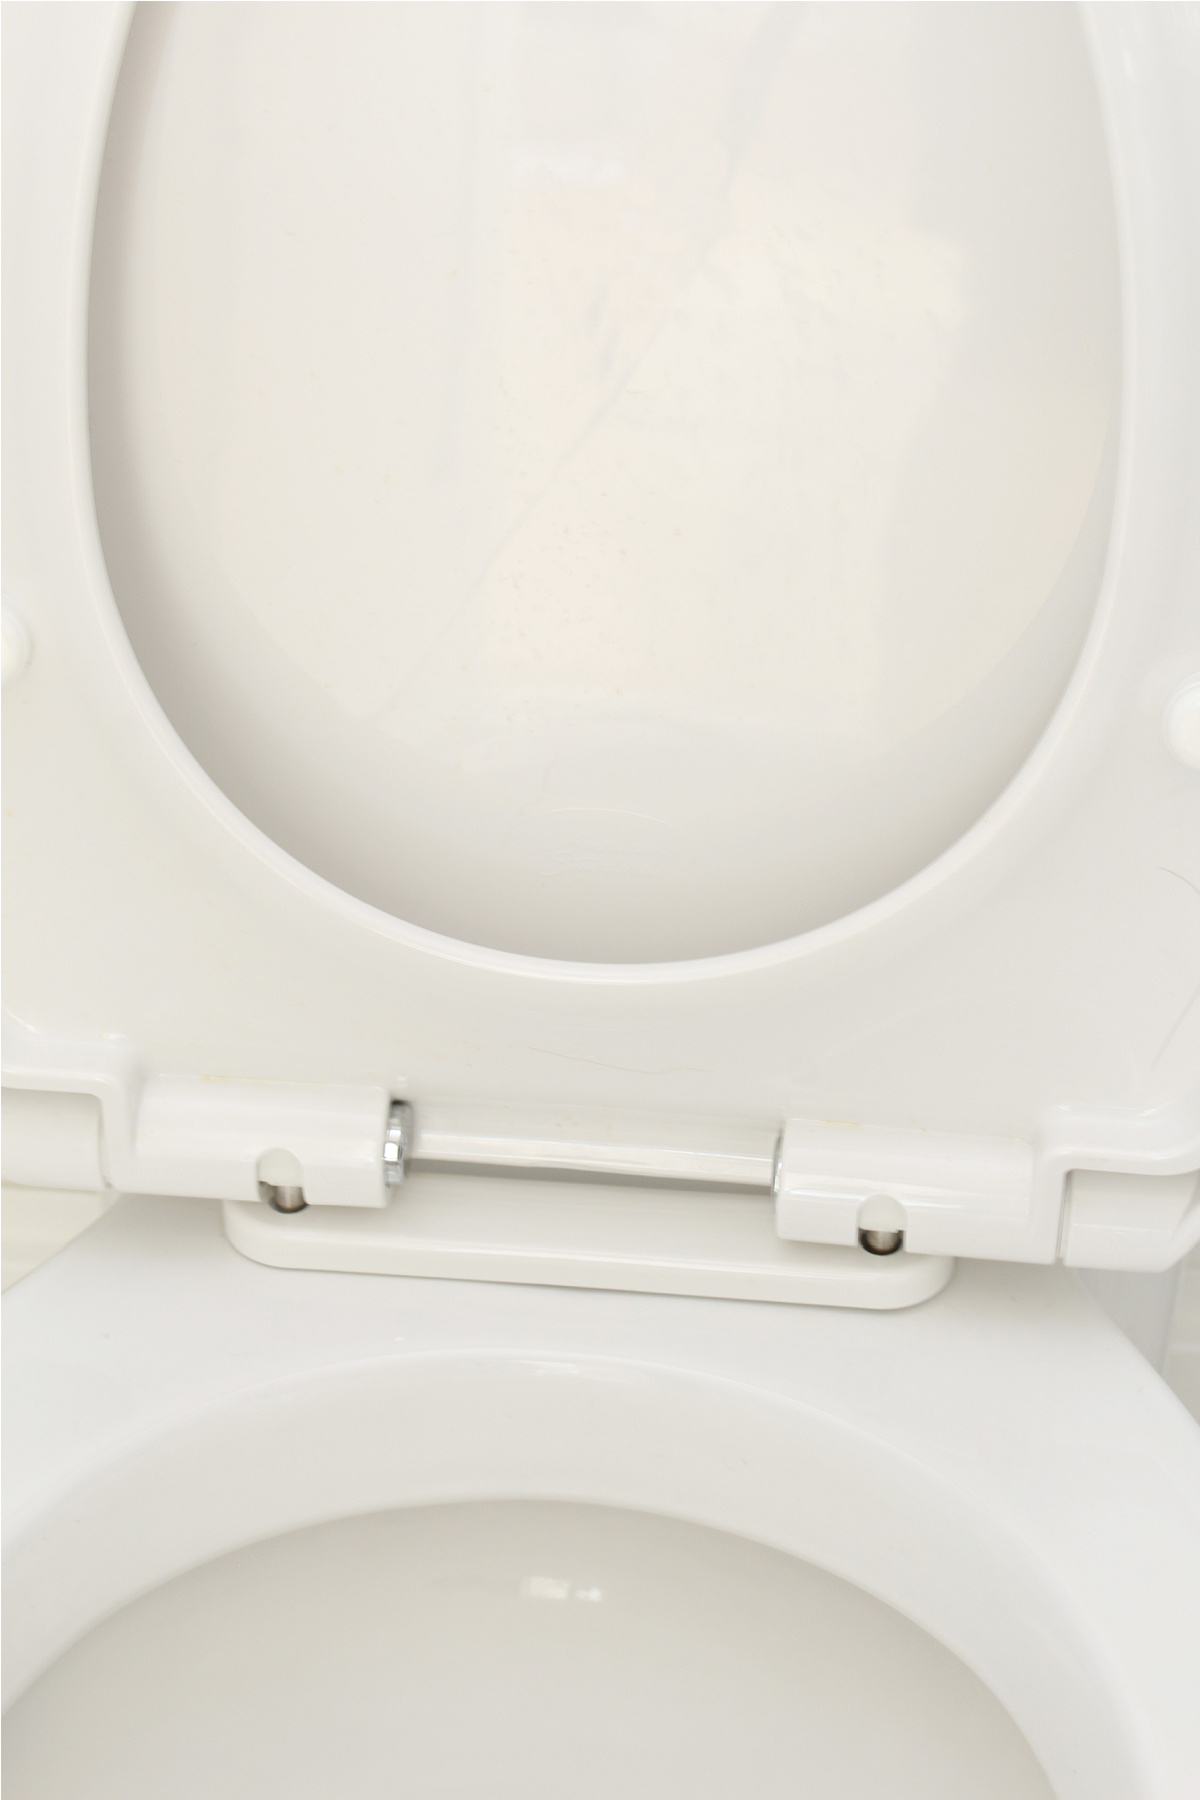 American Standard toilet with easy-to-remove toilet seat.